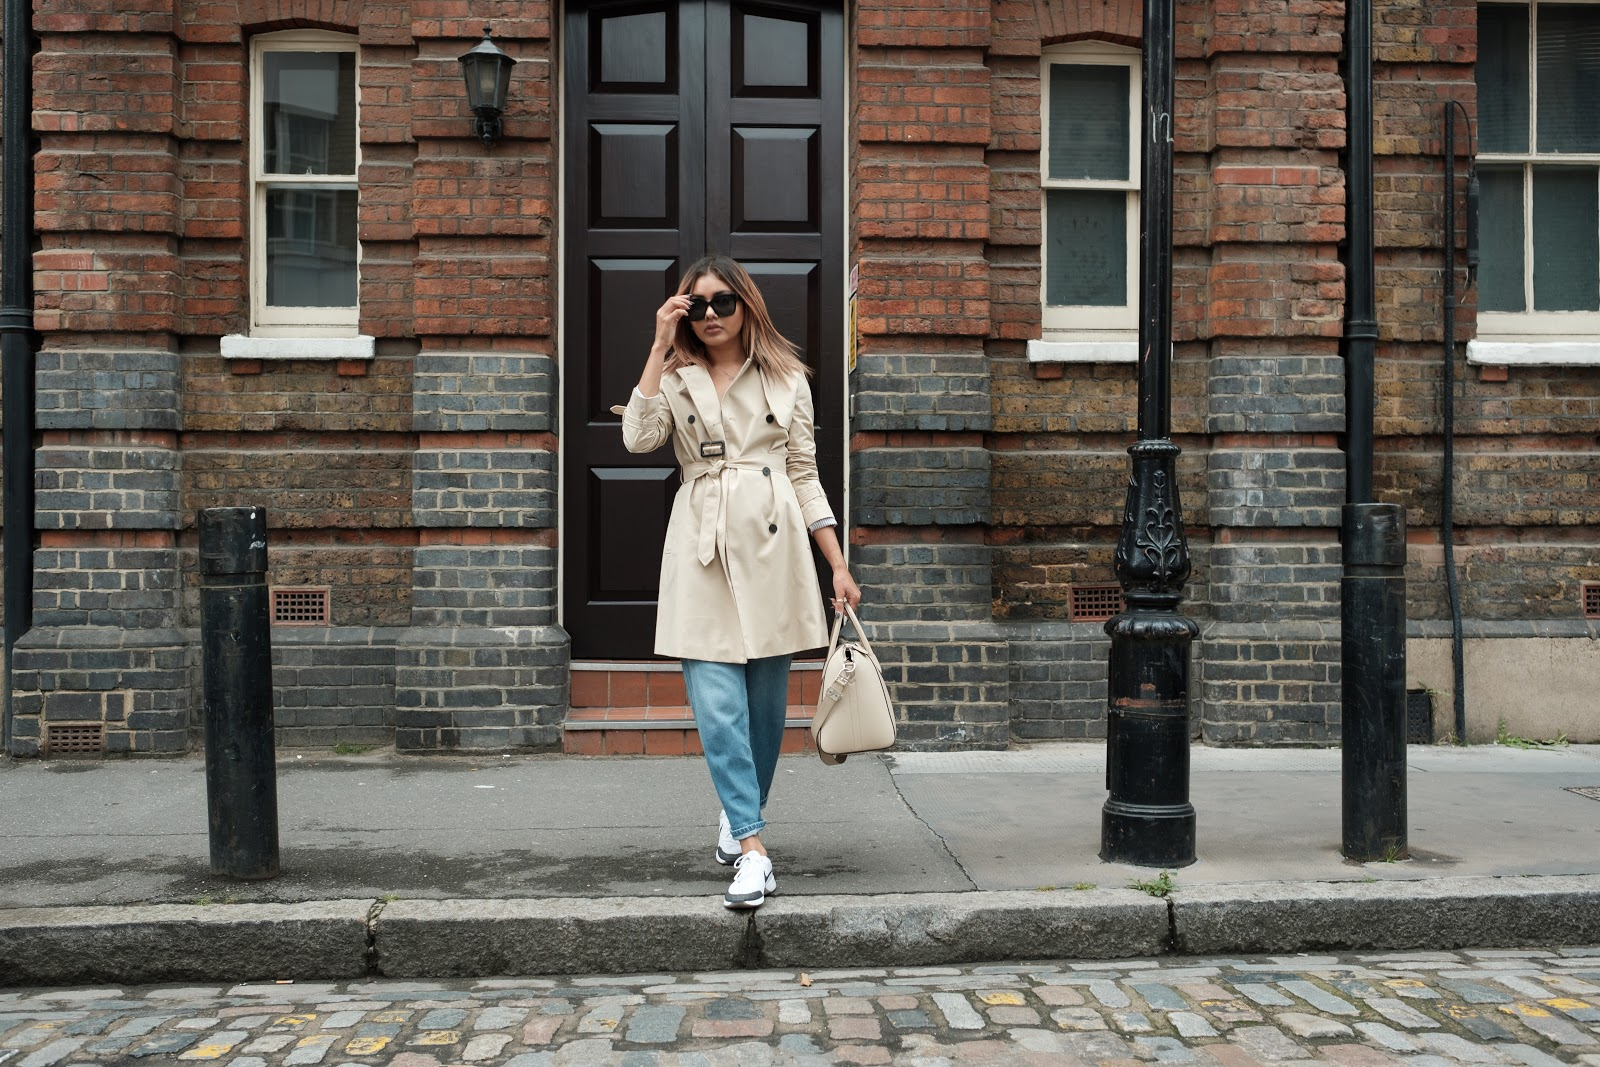 How To Alter Your Outlook on Life in a few Simple Steps // (Styling the Trench Coat with Jack Wills)